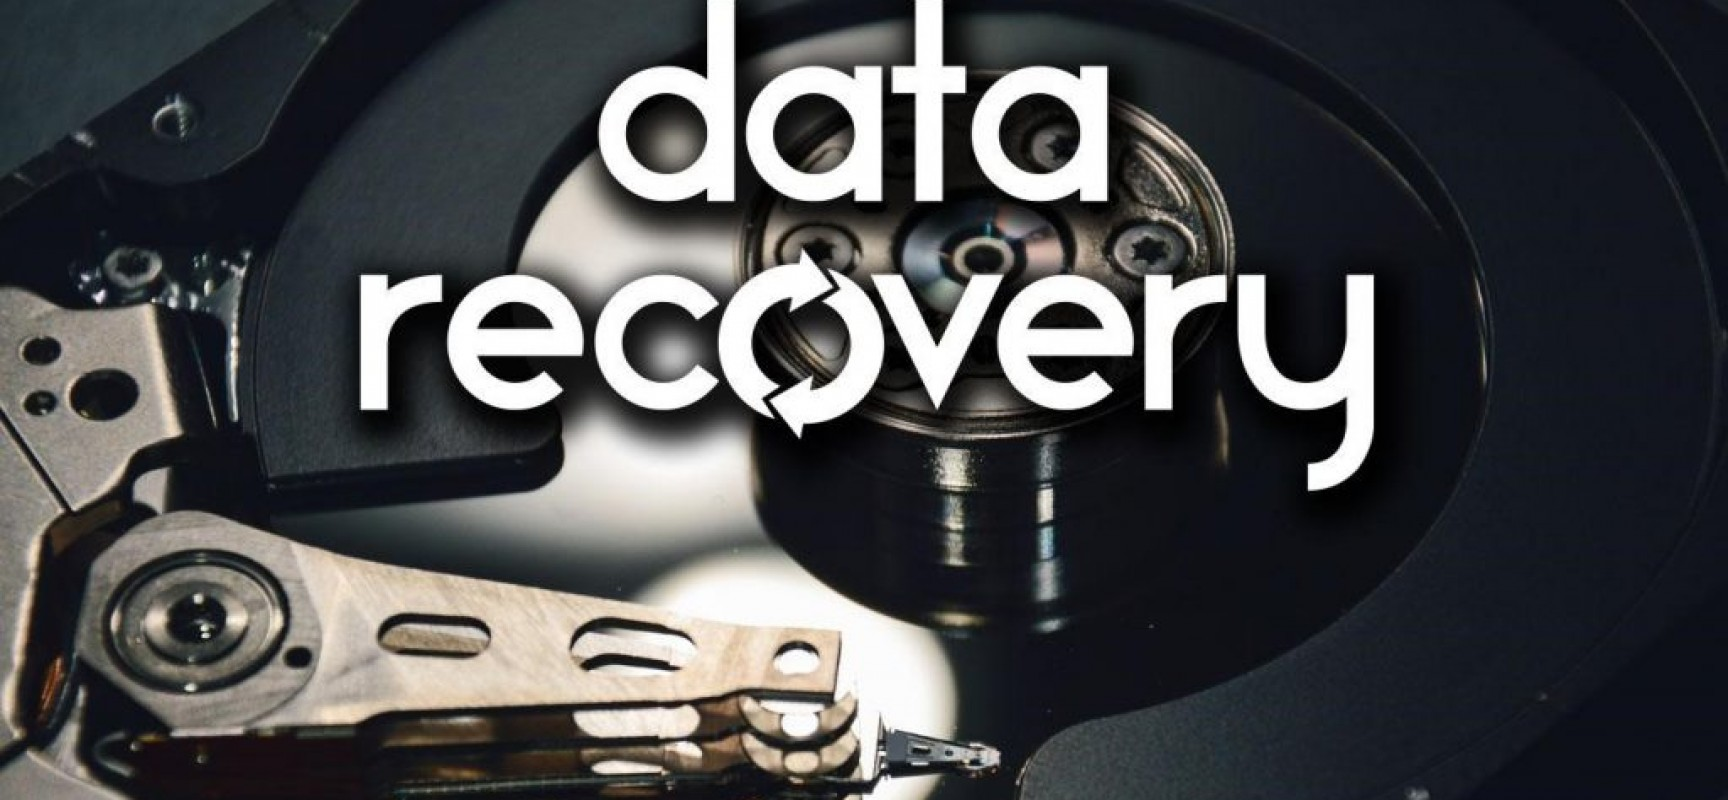 Data Recovery From Computer Hard Drive Which Is Clicking With Unusual Noise